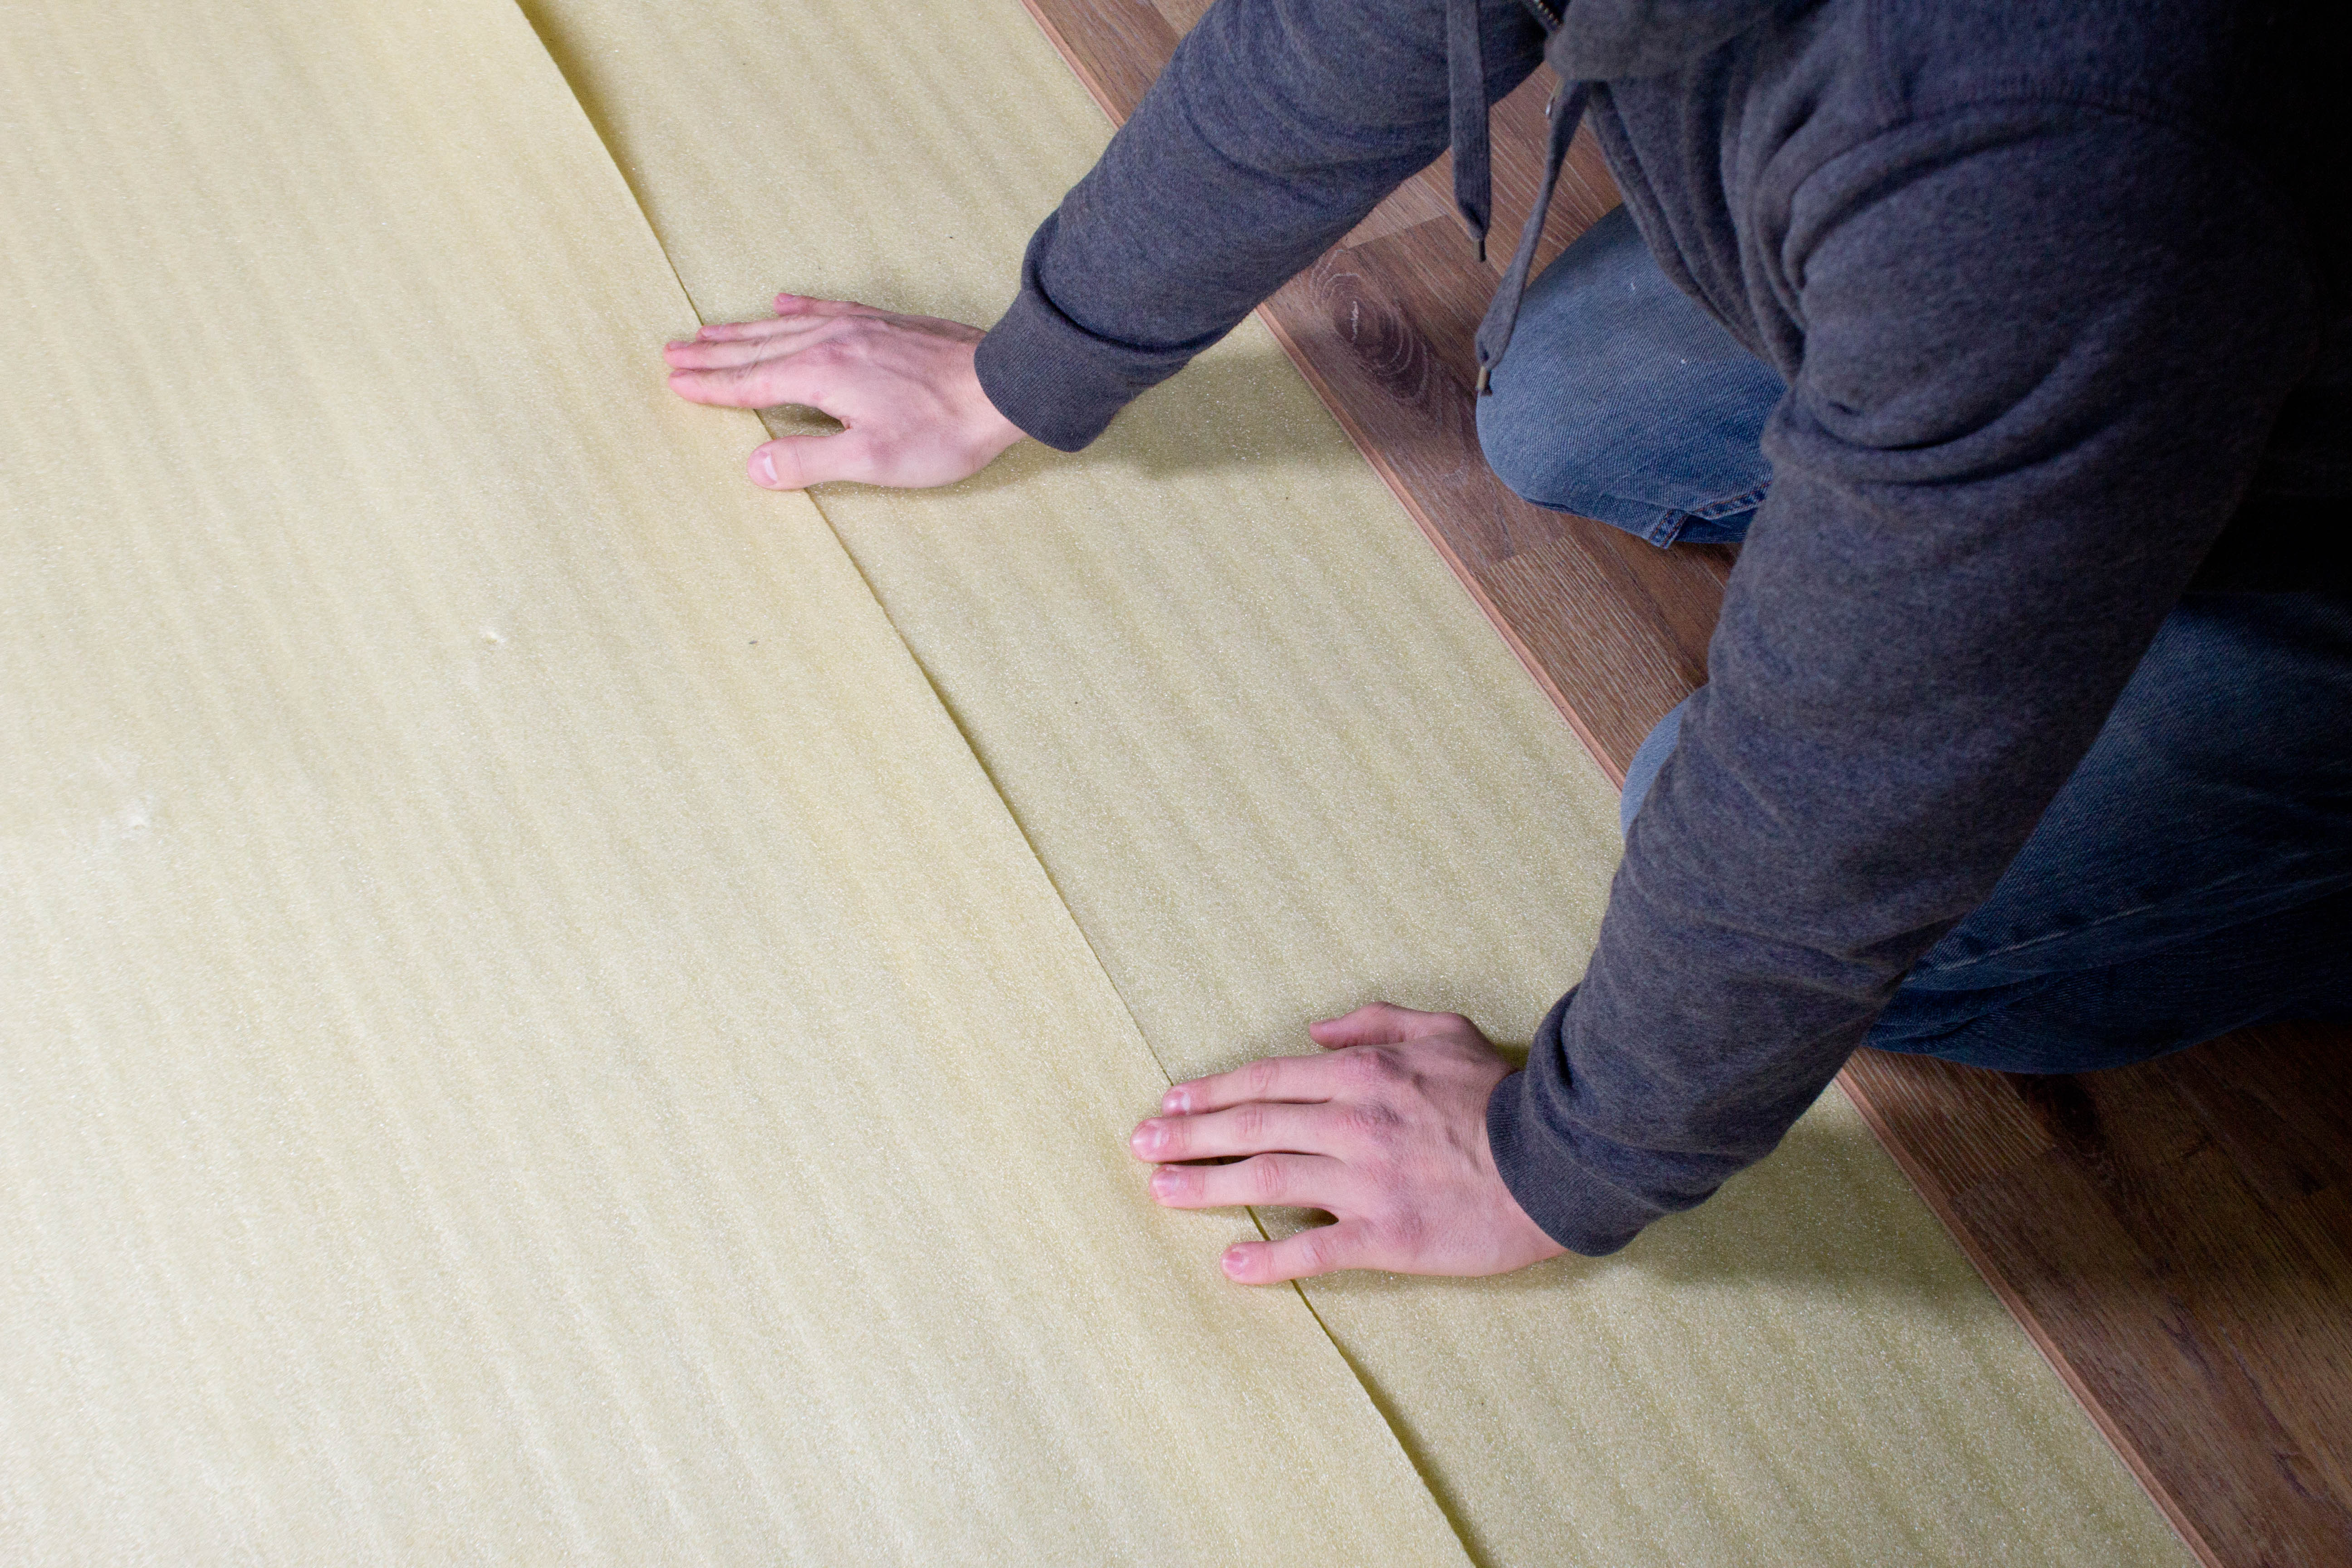 How To Install In Vapor Barrier Flooring Underlayment - How to install moisture barrier under laminate flooring